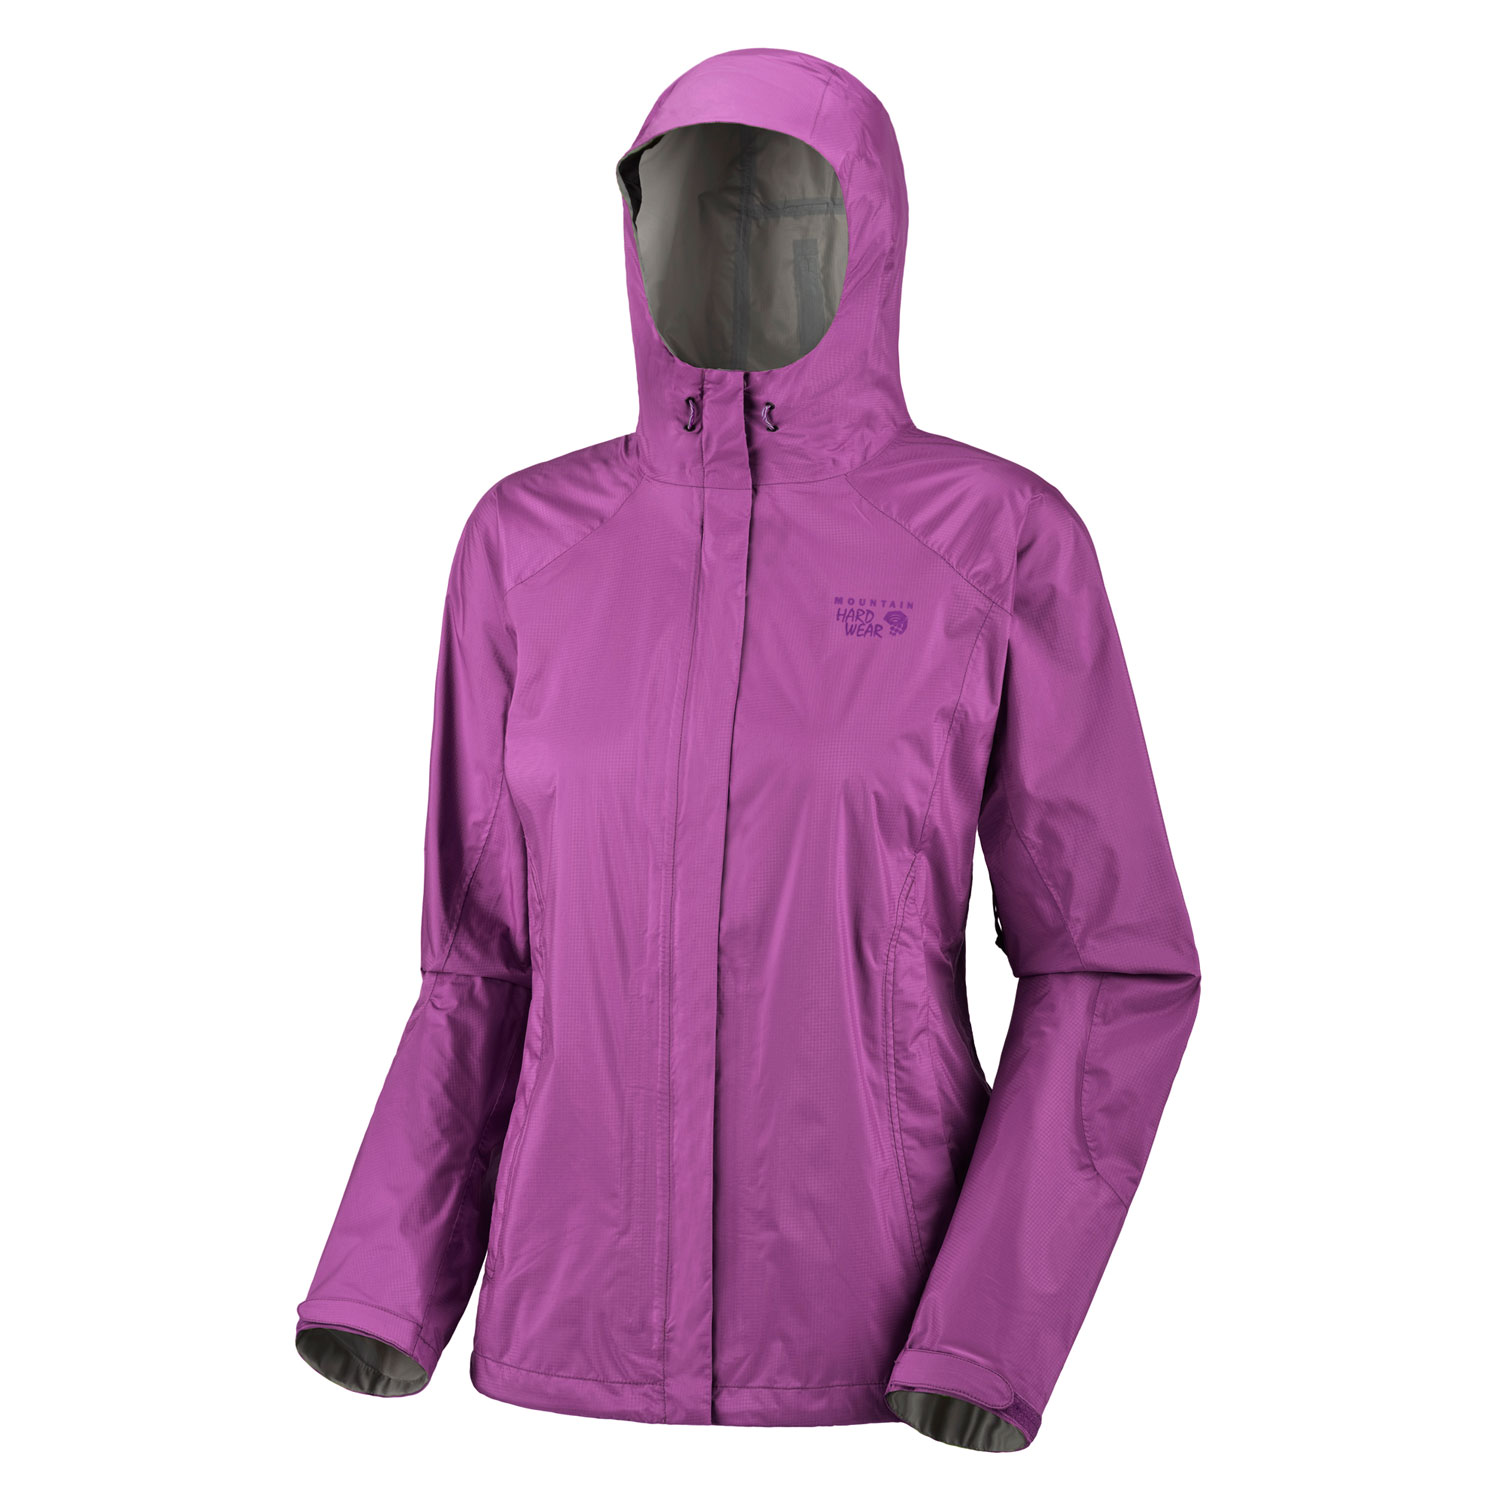 "Key Features of the Mountain Hardwear Epic Rain Jacket: Avg. weight: 12oz; 348g Center back length: 26.5"" Fabric: body: Ark Ripstop 2.5L (100% nylon) DryQ Elite: 100% waterproof, most breathable, air-permeable, no-wait comfort Attached hood with extra-beefy brim for added protection against the elements Pit zips Micro-Chamois - lined chin guard eliminates zipper chafe Dual hem drawcords for quick fit adjustments Adjustable Velcro cuffs for quick fit adjustments - $69.95"